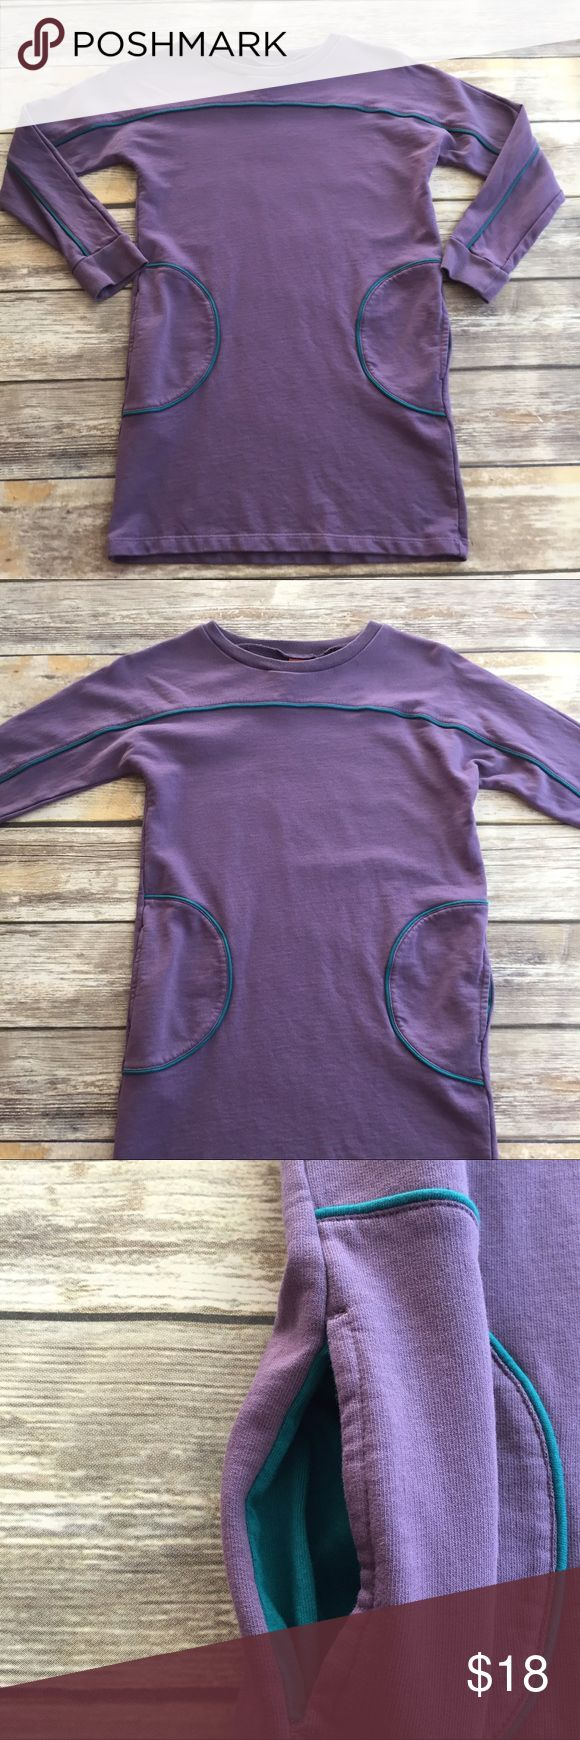 """Tea Collection Dress Purple long sleeve dress with pockets. """"Katri Goes Kasual"""" dress from the """"Mod. Cool. Back to school"""" line. Excellent condition. Tea Collection Dresses"""